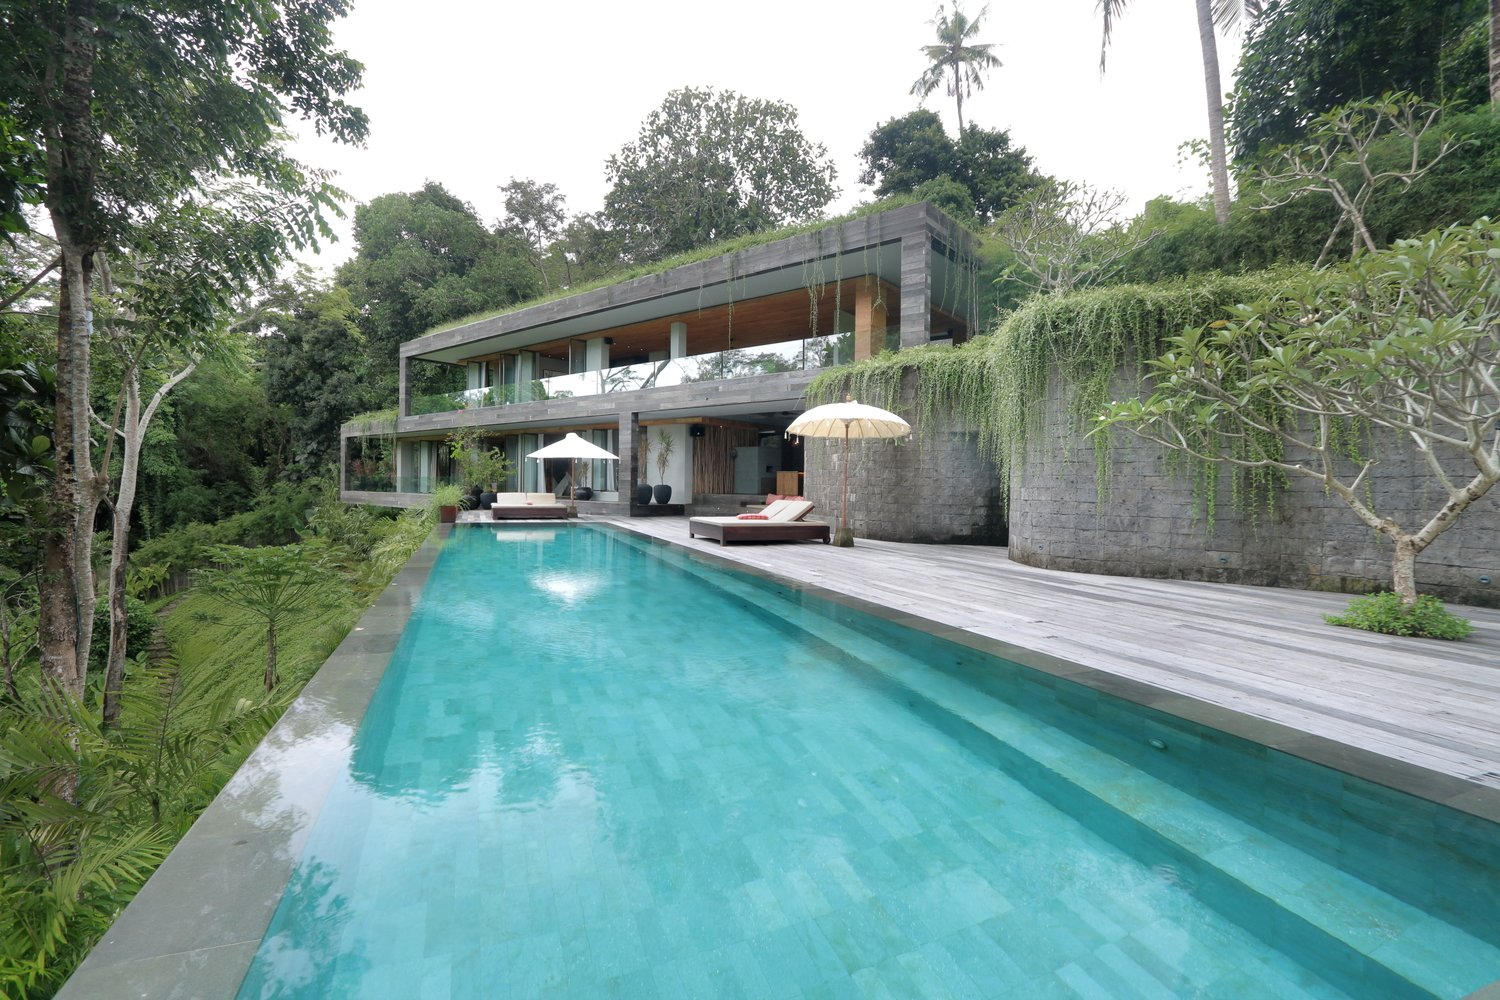 Outdoor, Hardscapes, Back Yard, Trees, Large Pools, Tubs, Shower, Stone Fences, Wall, and Large Patio, Porch, Deck Sited on a steep hill overlooking lush tropical jungle and a river, this private villa is set on different levels that appear as if they are part of the natural landscape. The architecture follows the contours of the land, allowing for in-between spaces and gardens that would otherwise be difficult to enjoy.  Photo 8 of 12 in The 11 Most Influential Buildings of 2018